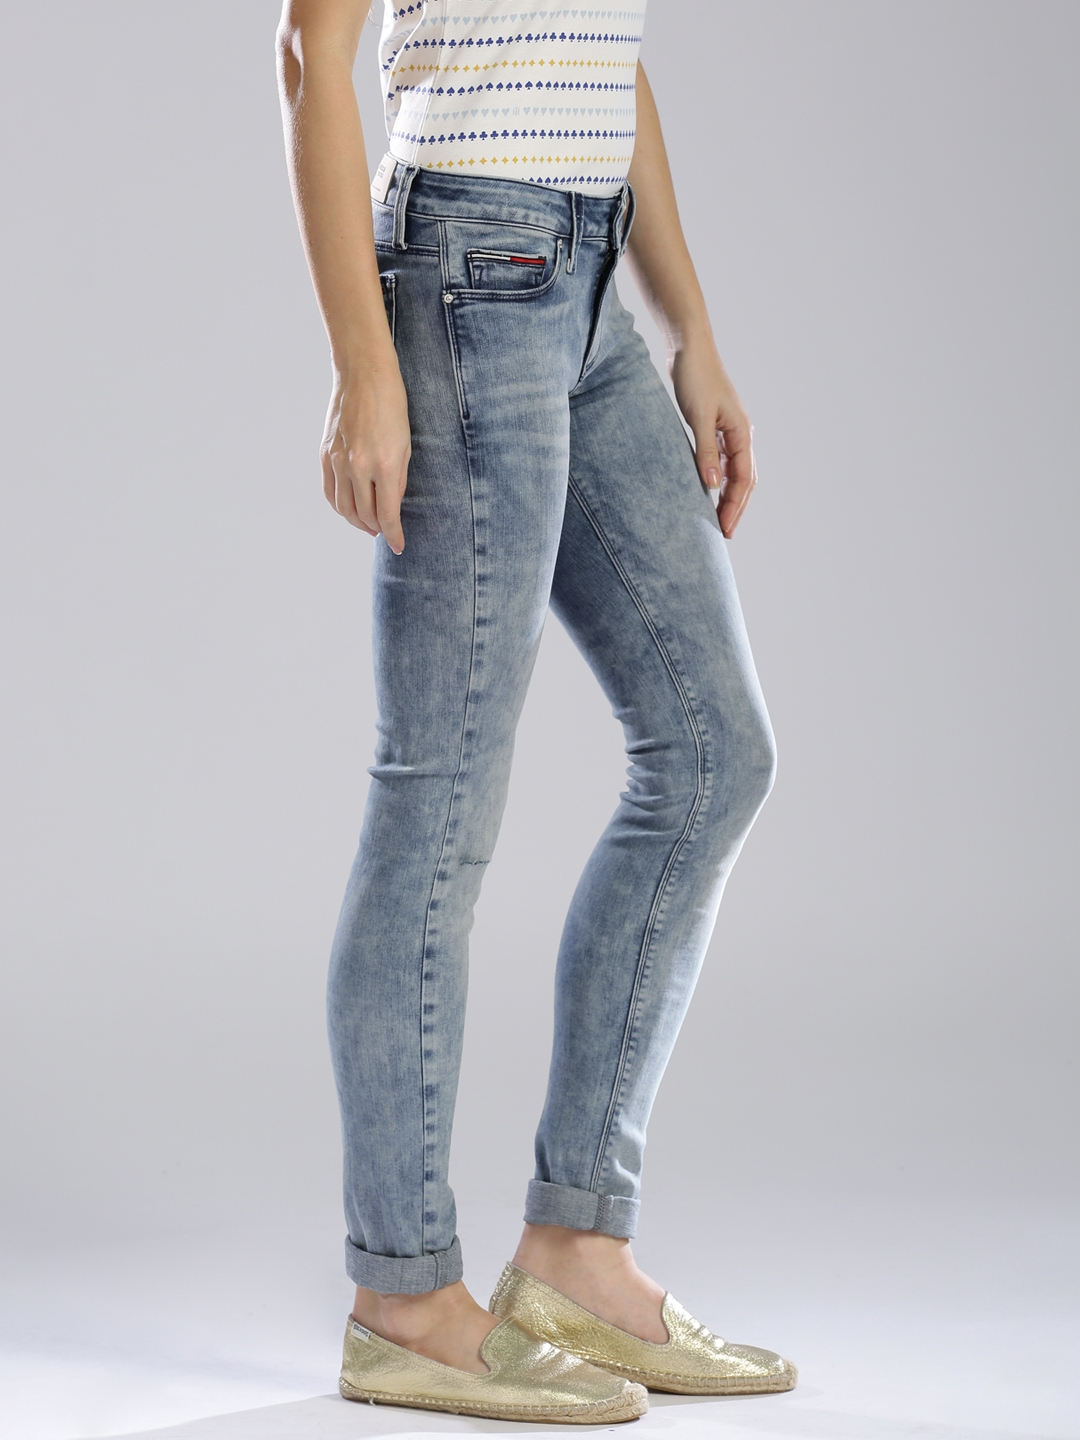 18fa0c8e Buy Tommy Hilfiger Blue Nora Skinny Fit Jeans - Jeans for Women ...